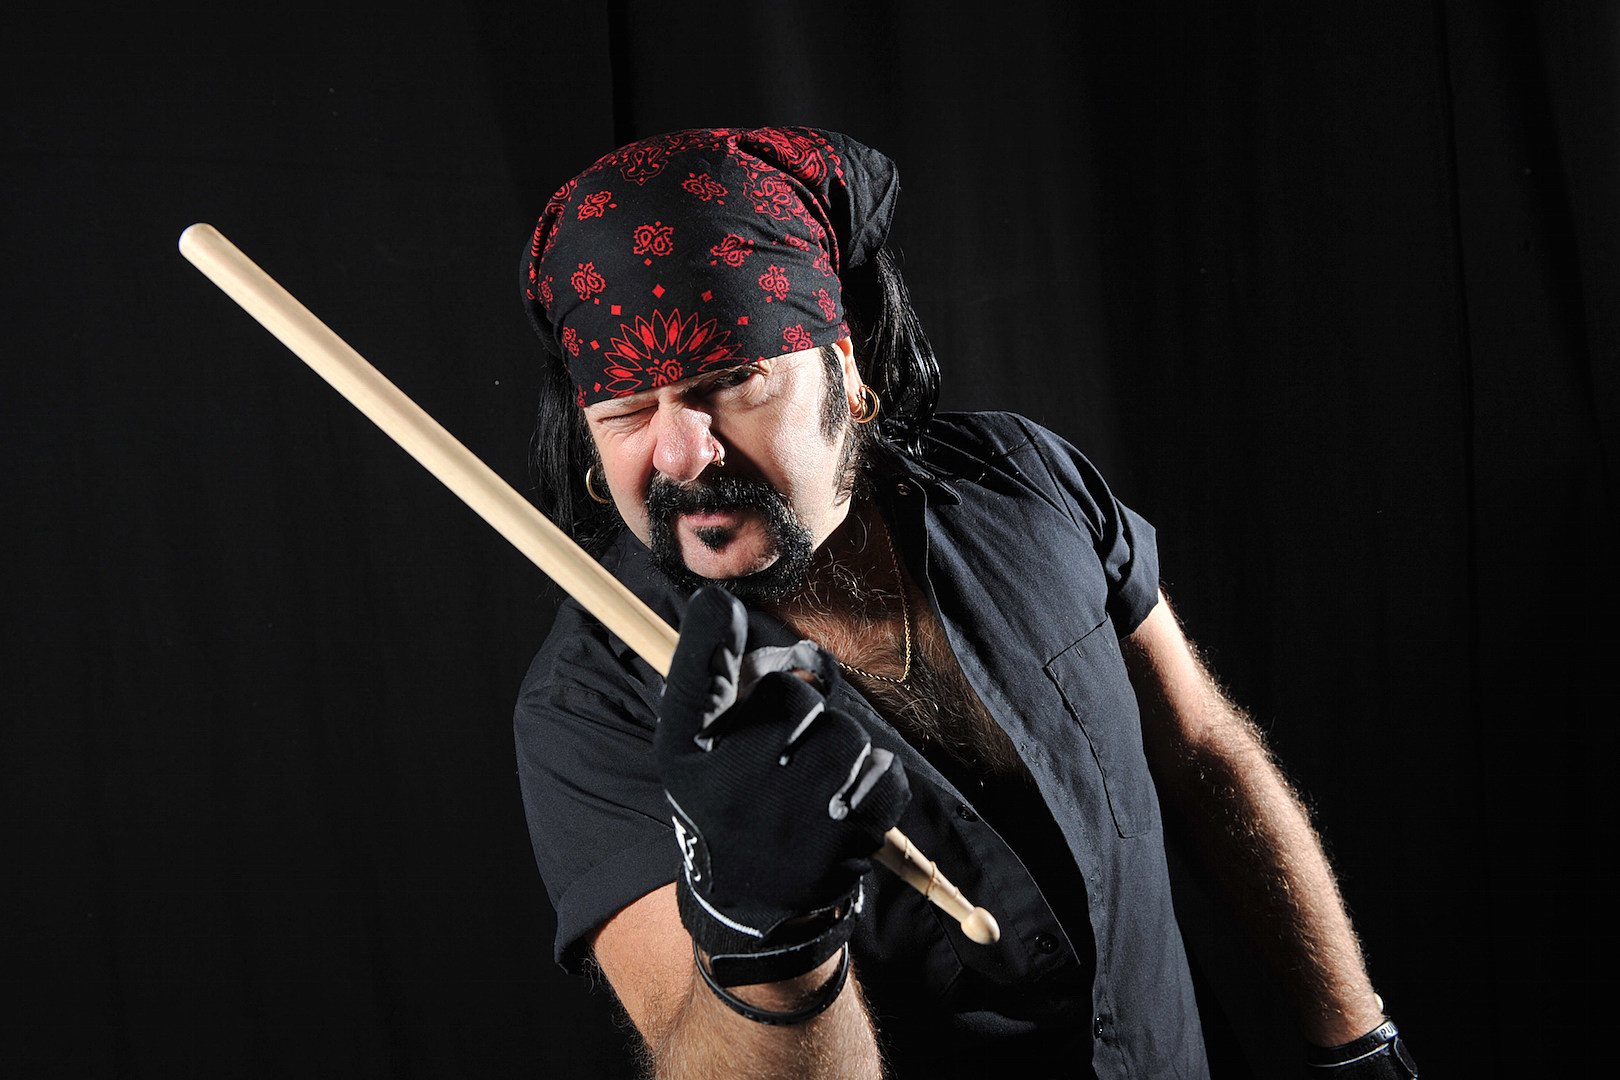 Remembering Vinnie Paul: The Drummer and the Man